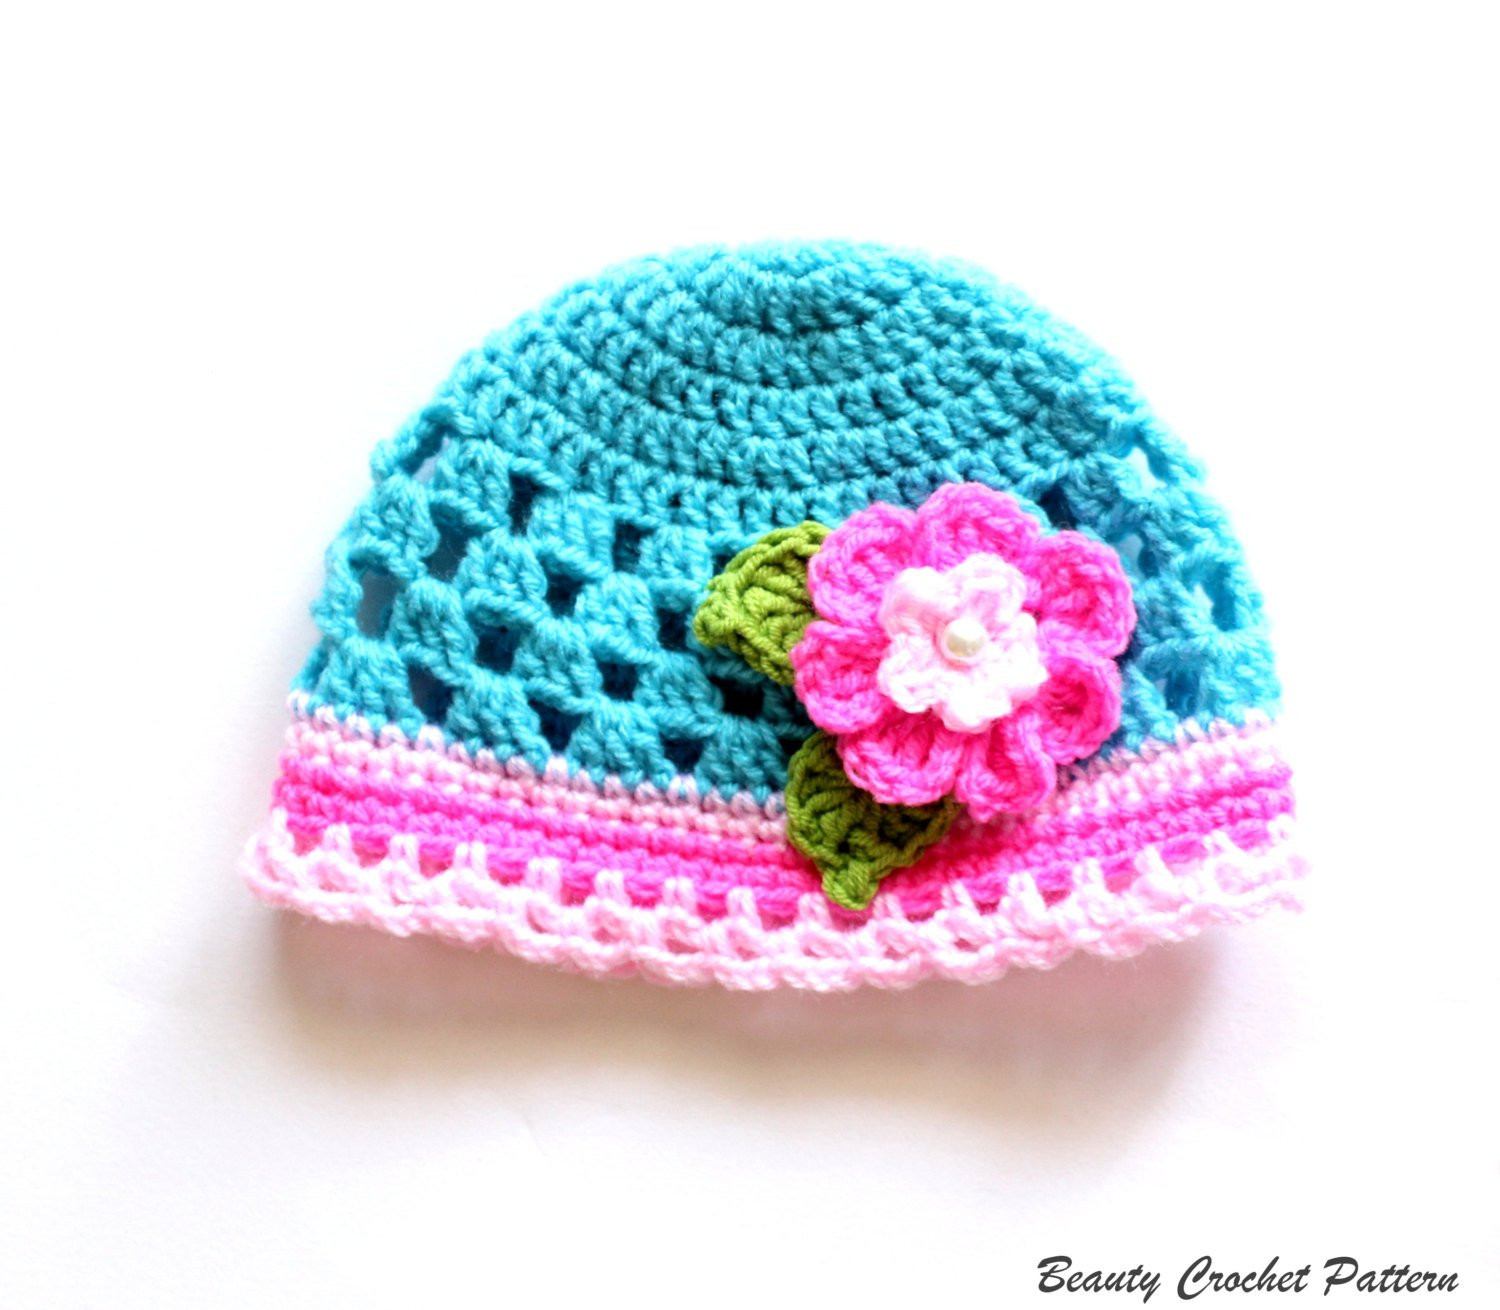 Crochet Girls Hats Best Of Baby Girl Hat Crochet Pattern Crochet Girls Hat Pattern Of New 46 Ideas Crochet Girls Hats